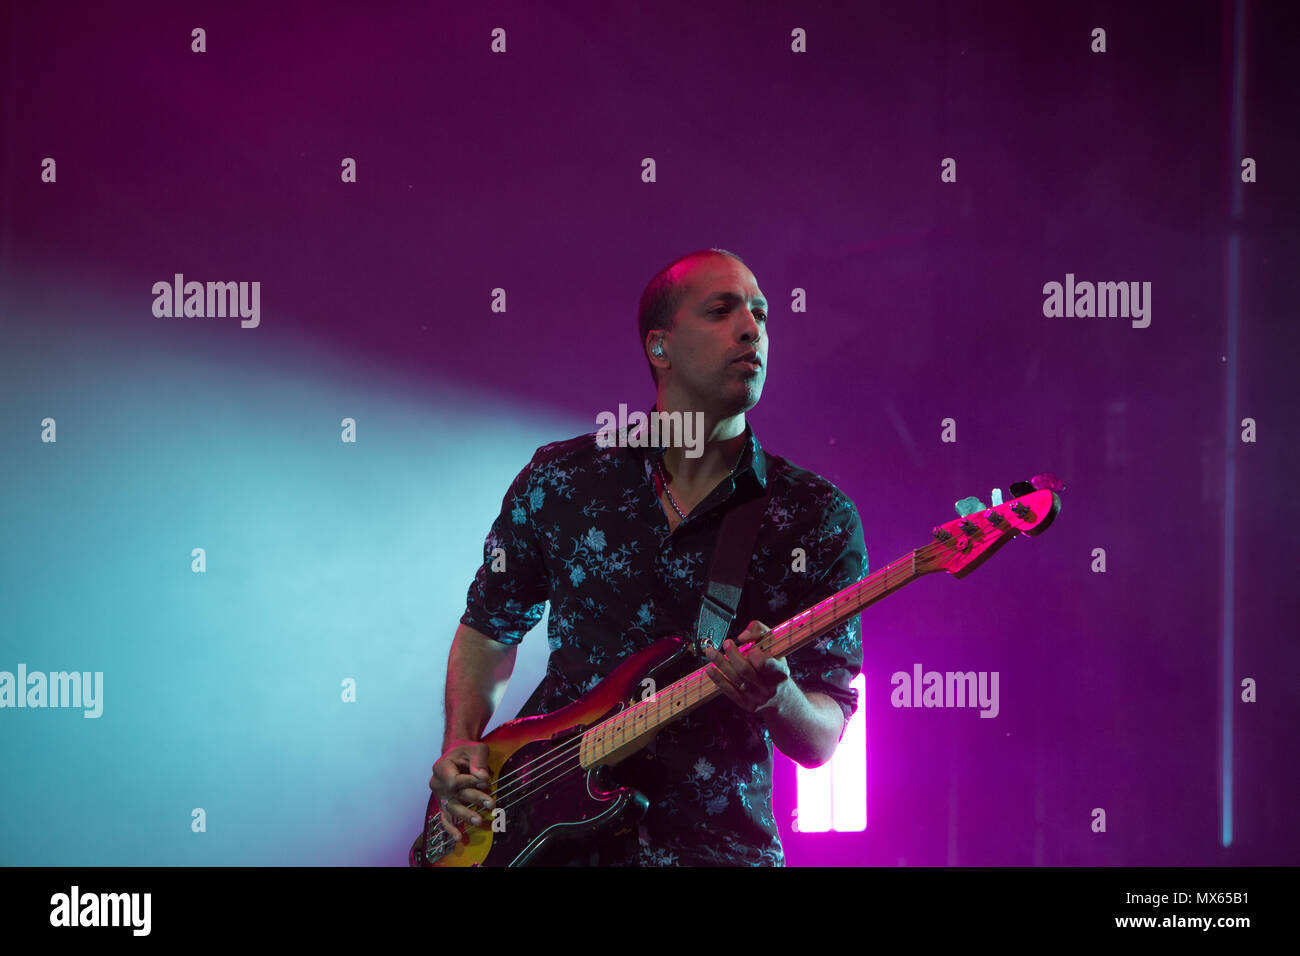 Toronto, CANADA. 02nd June 2018, Bassist Joshua Winstead of Canadian Pop Rock band Metric performas at the 2018 Field Trip Music & Arts Festival in Toronto. Credit: Bobby Singh/Alamay Live News Credit: topconcertphoto/Alamy Live News - Stock Image